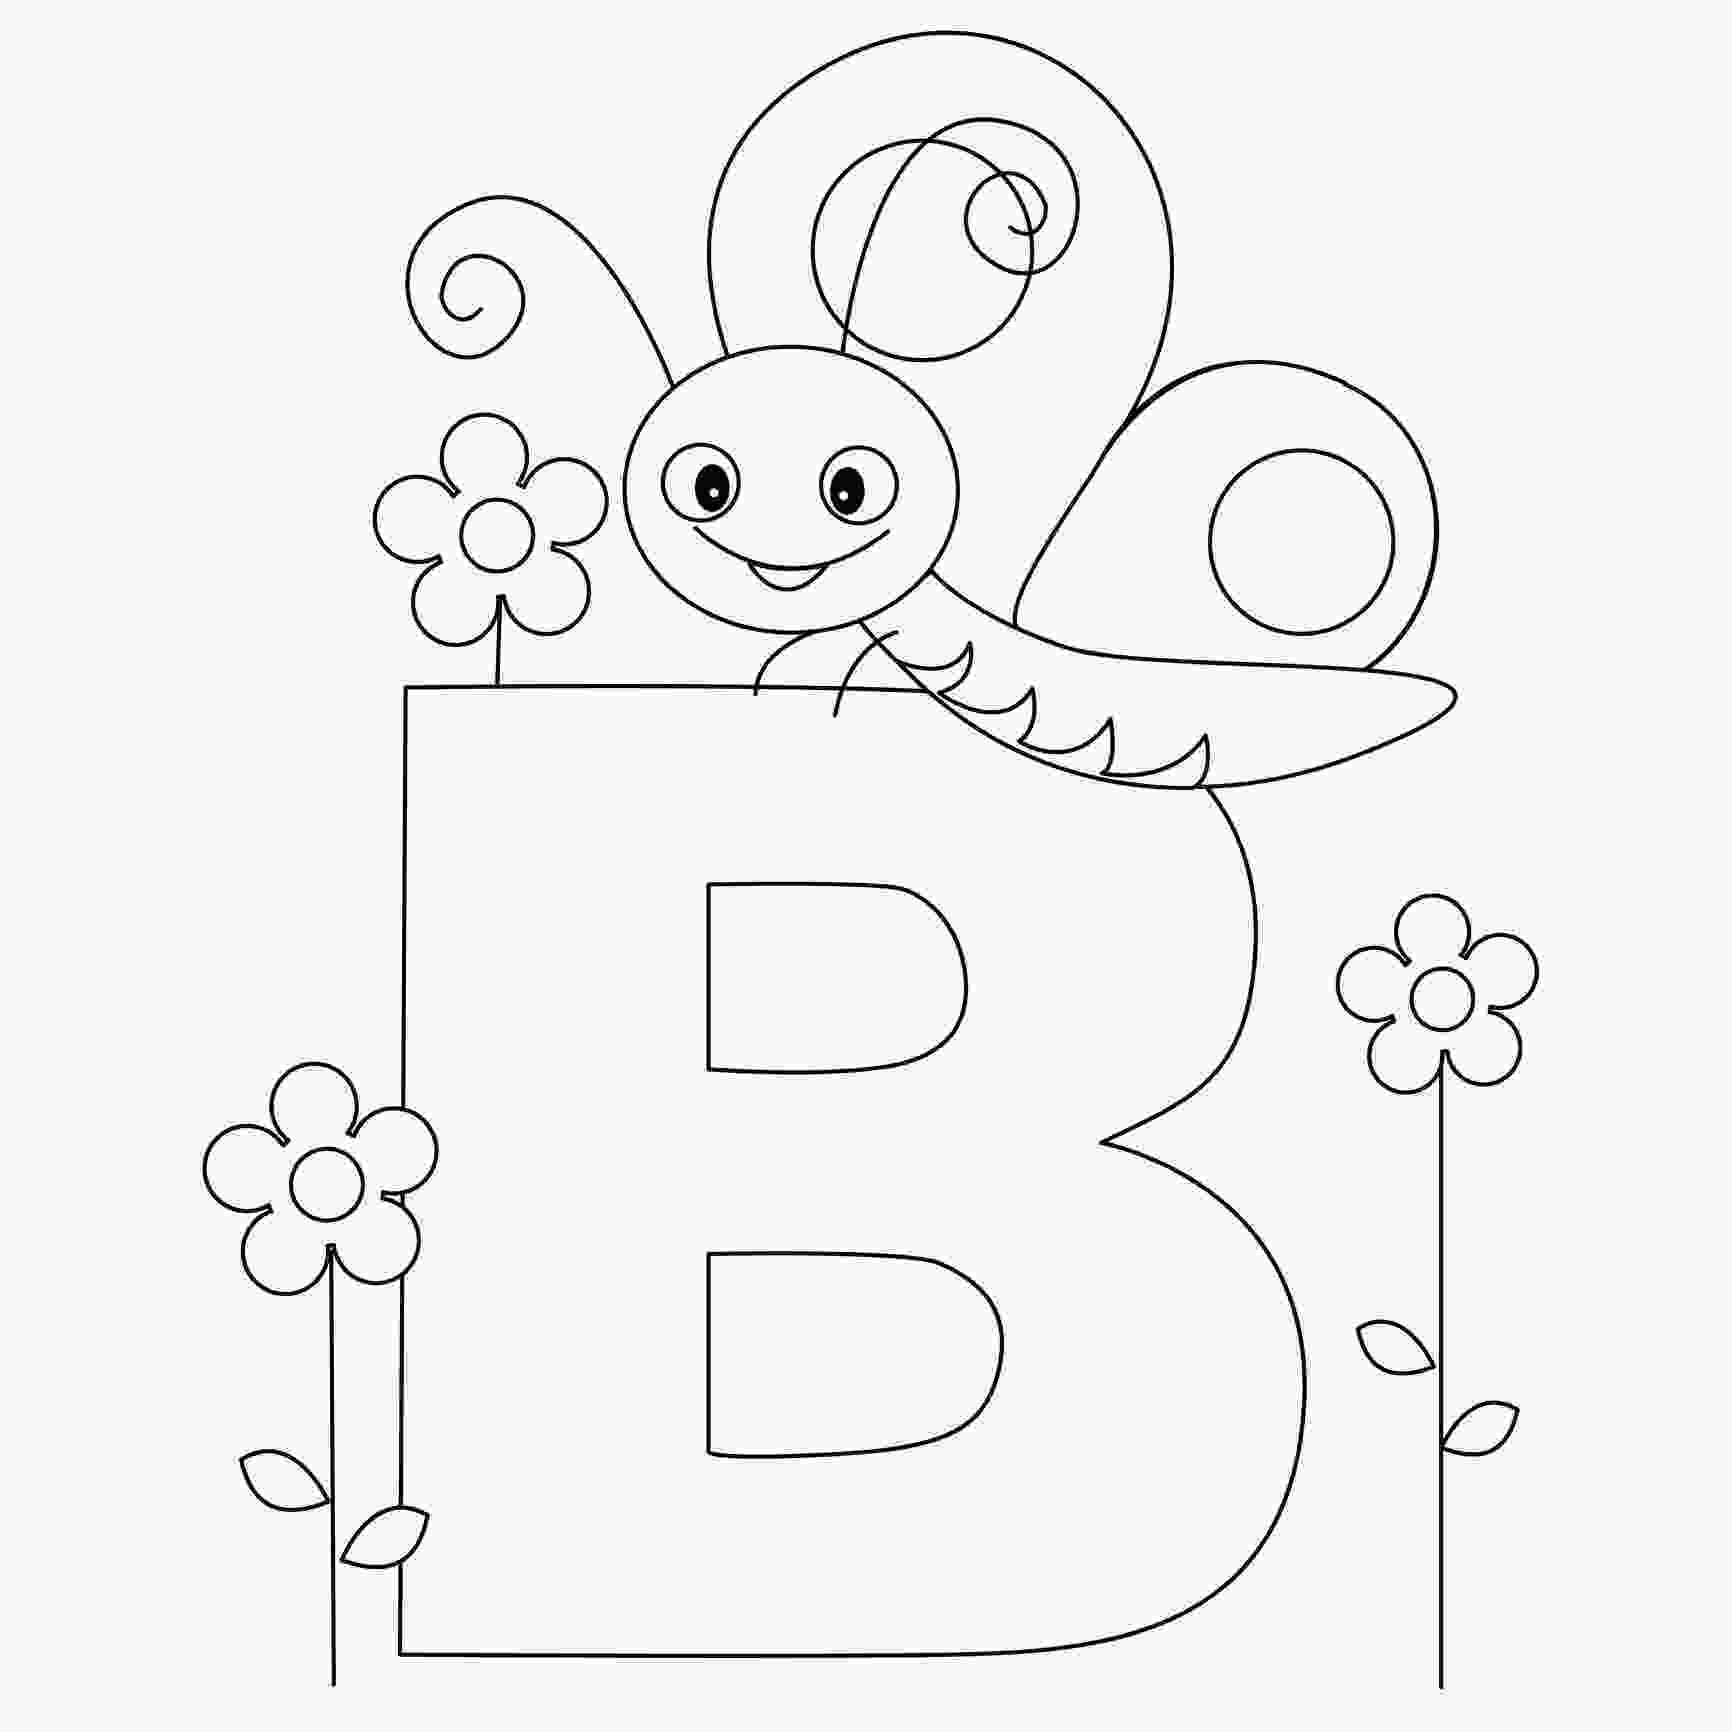 kindergarten alphabet coloring pages free printable alphabet coloring pages for kids best 2